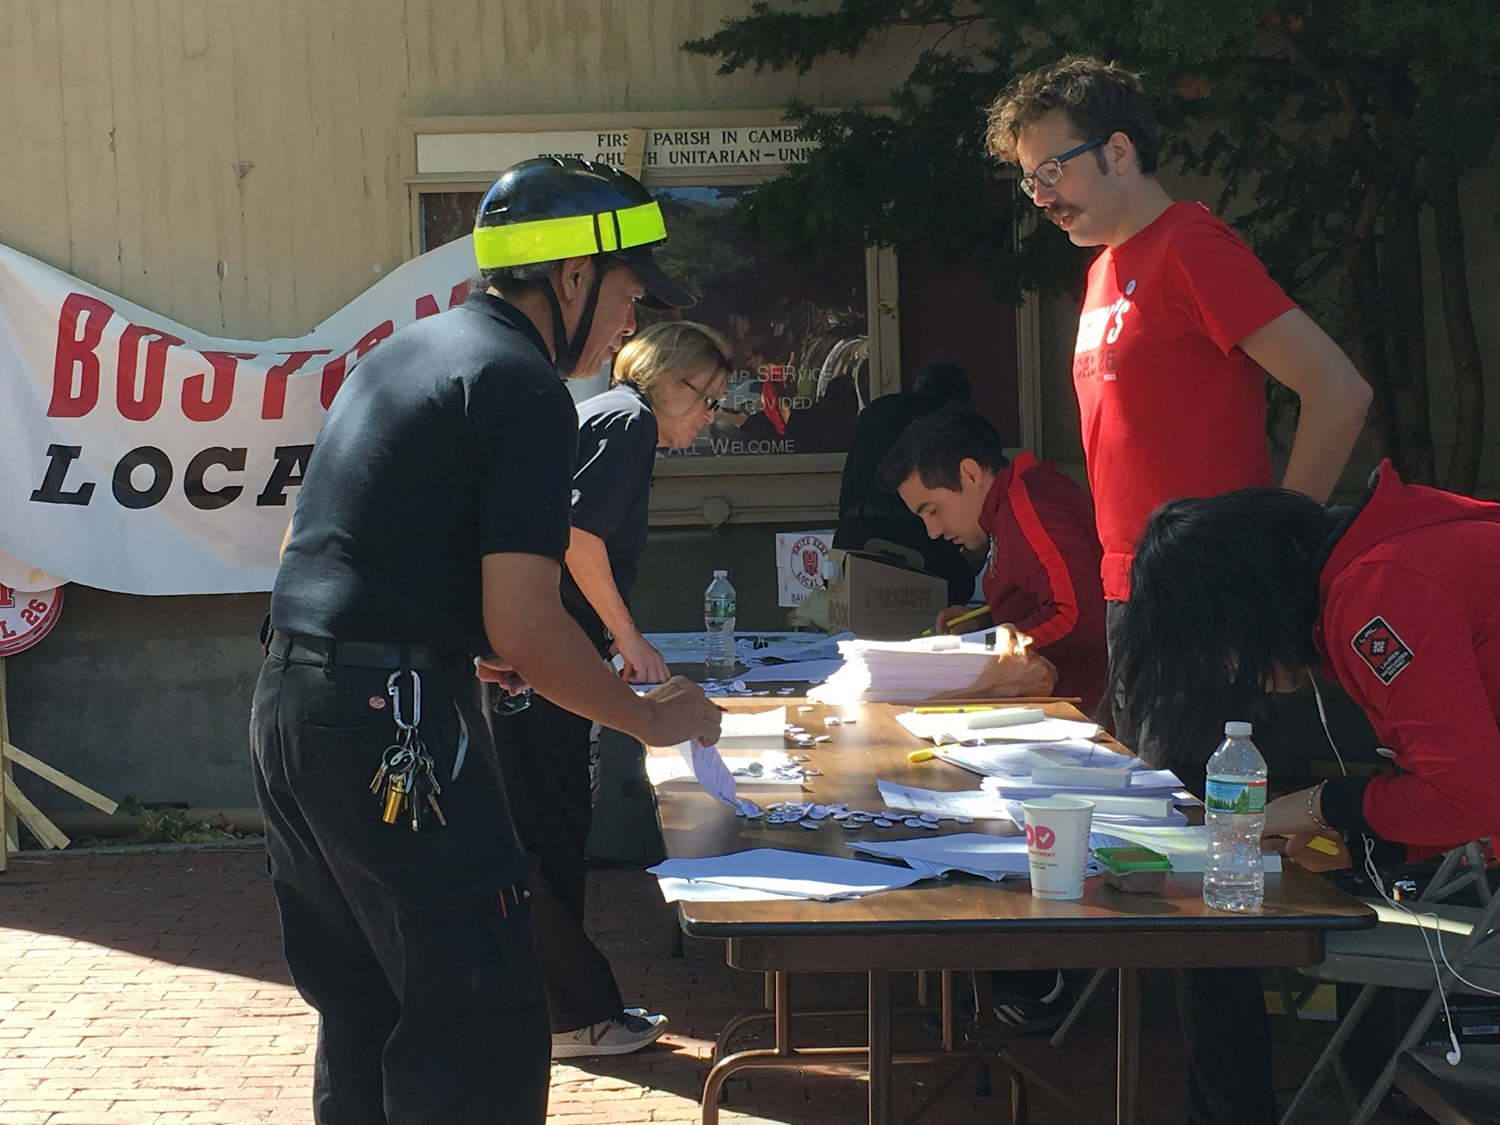 Workers cast their ballots at the HUDS Strike Vote outside First Parish Church in Cambridge on Thursday afternoon.